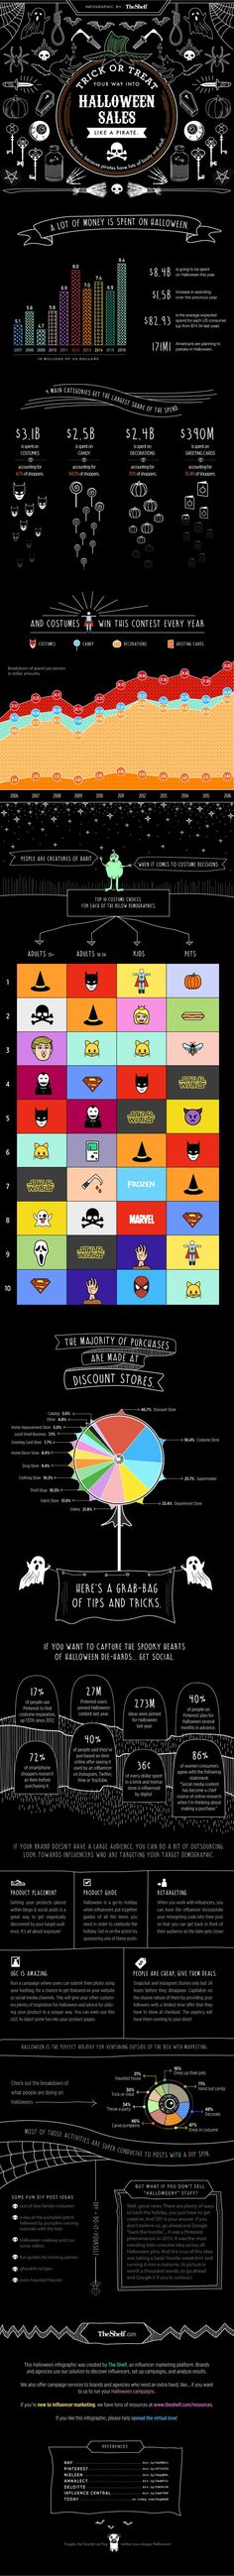 Trick Or Treat Your Way Into Halloween Sales Like A Pirate: Infographic http://itz-my.com